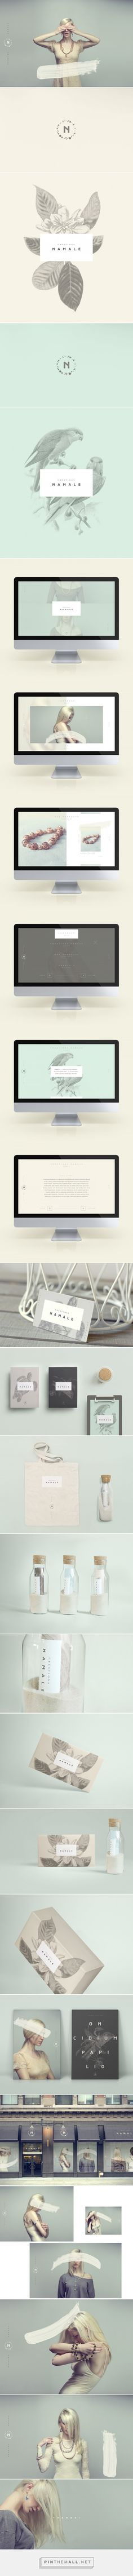 Créations Namale Branding by Phoenix the Creative Studio on Behance | Fivestar…